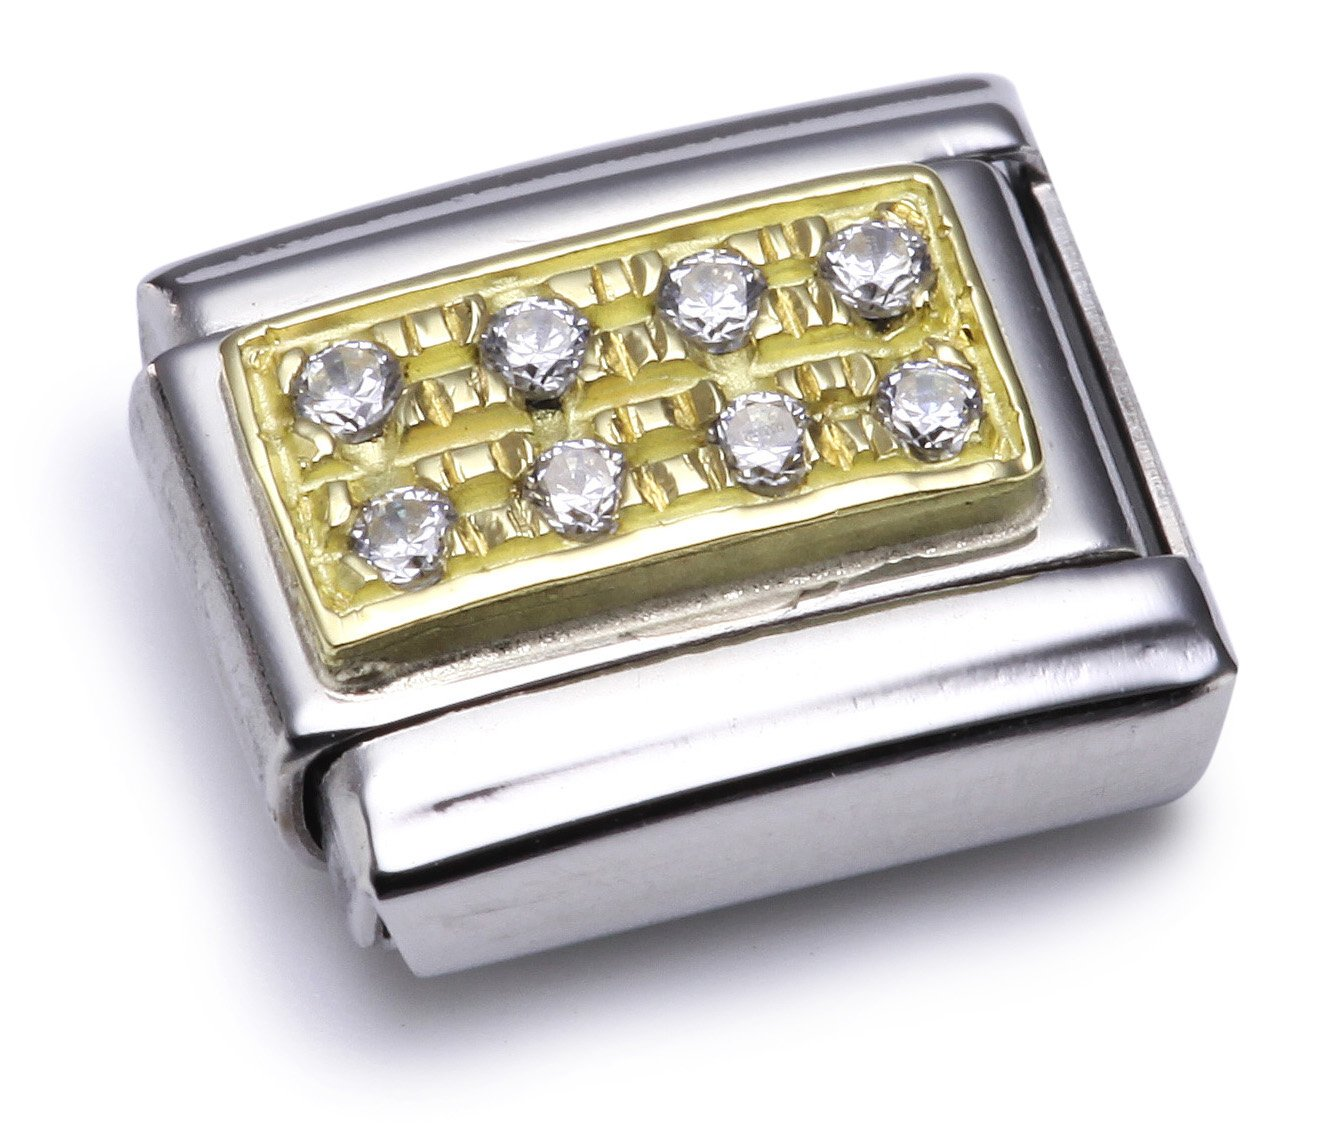 Nomination Composable Classic White Stones Stainless Steel, 18K Gold and Cubic Zirconium